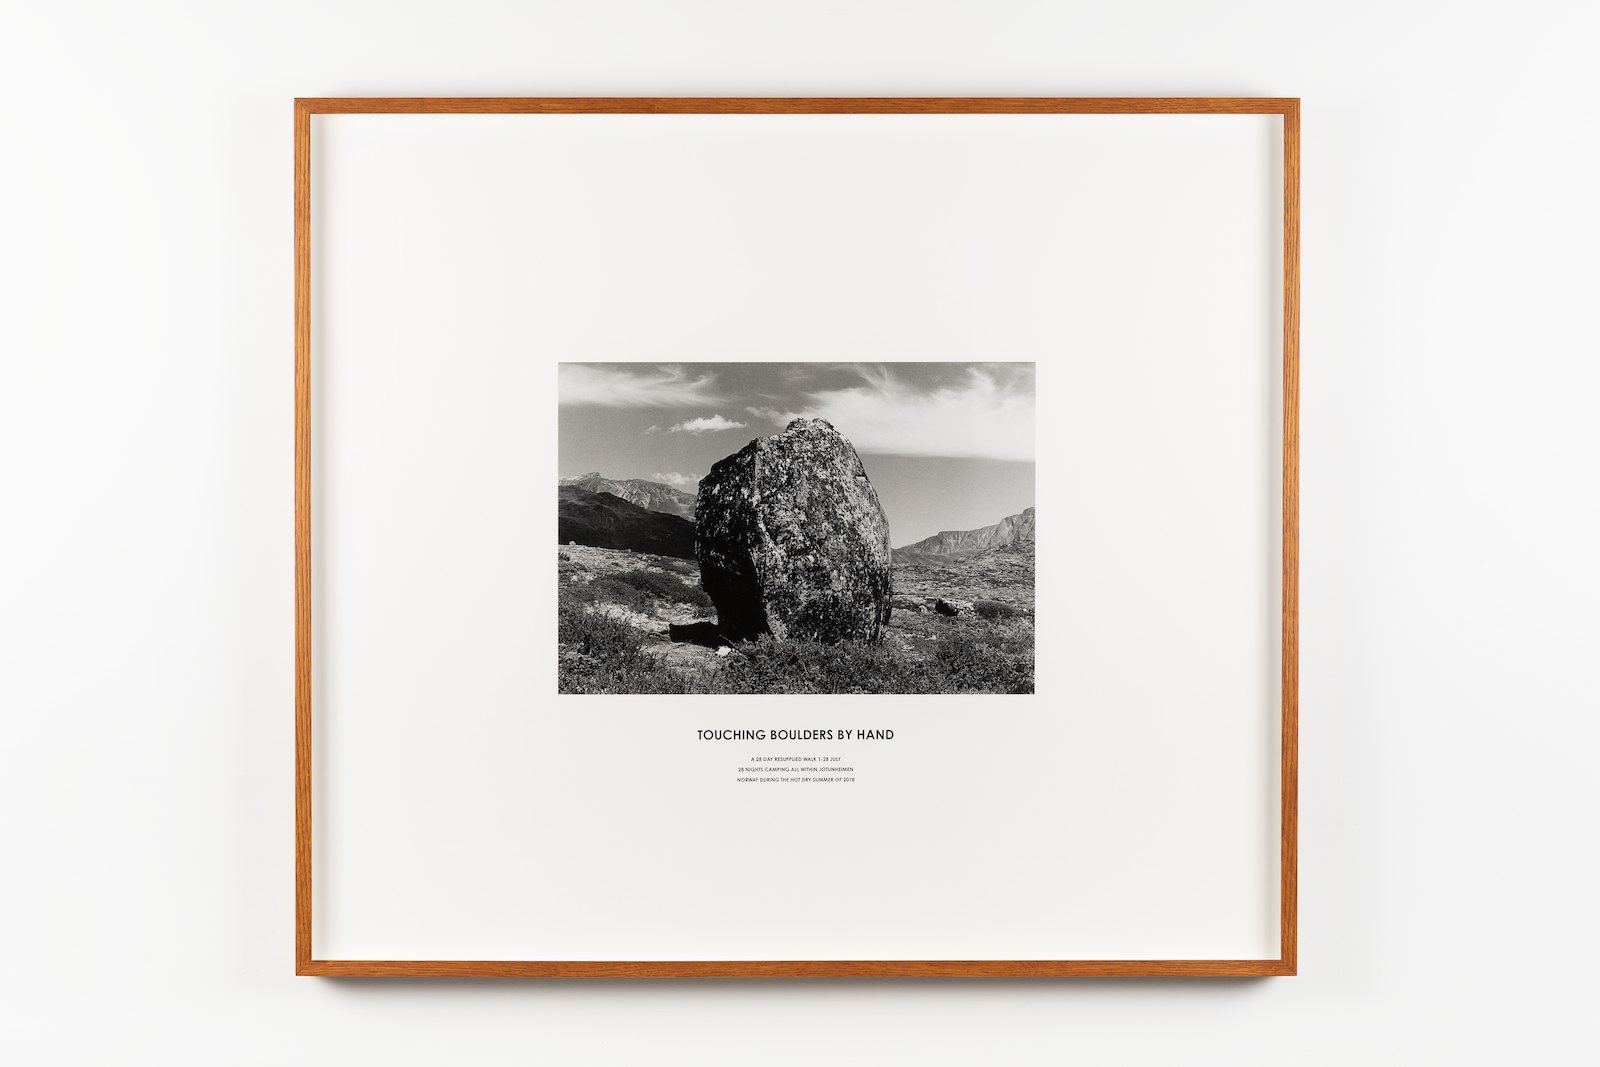 Touching Boulders by Hand. A 28 Day Resupplied Walk 1-28 July, 28 Nights Camping All Within Jotunheimen, Norway During the Hot Dry Summer of 2018. Silver gelatin photographic print with pressed lettering walk text on museum board in artists frame, 84 x 96 x 4,8 cm. Unique